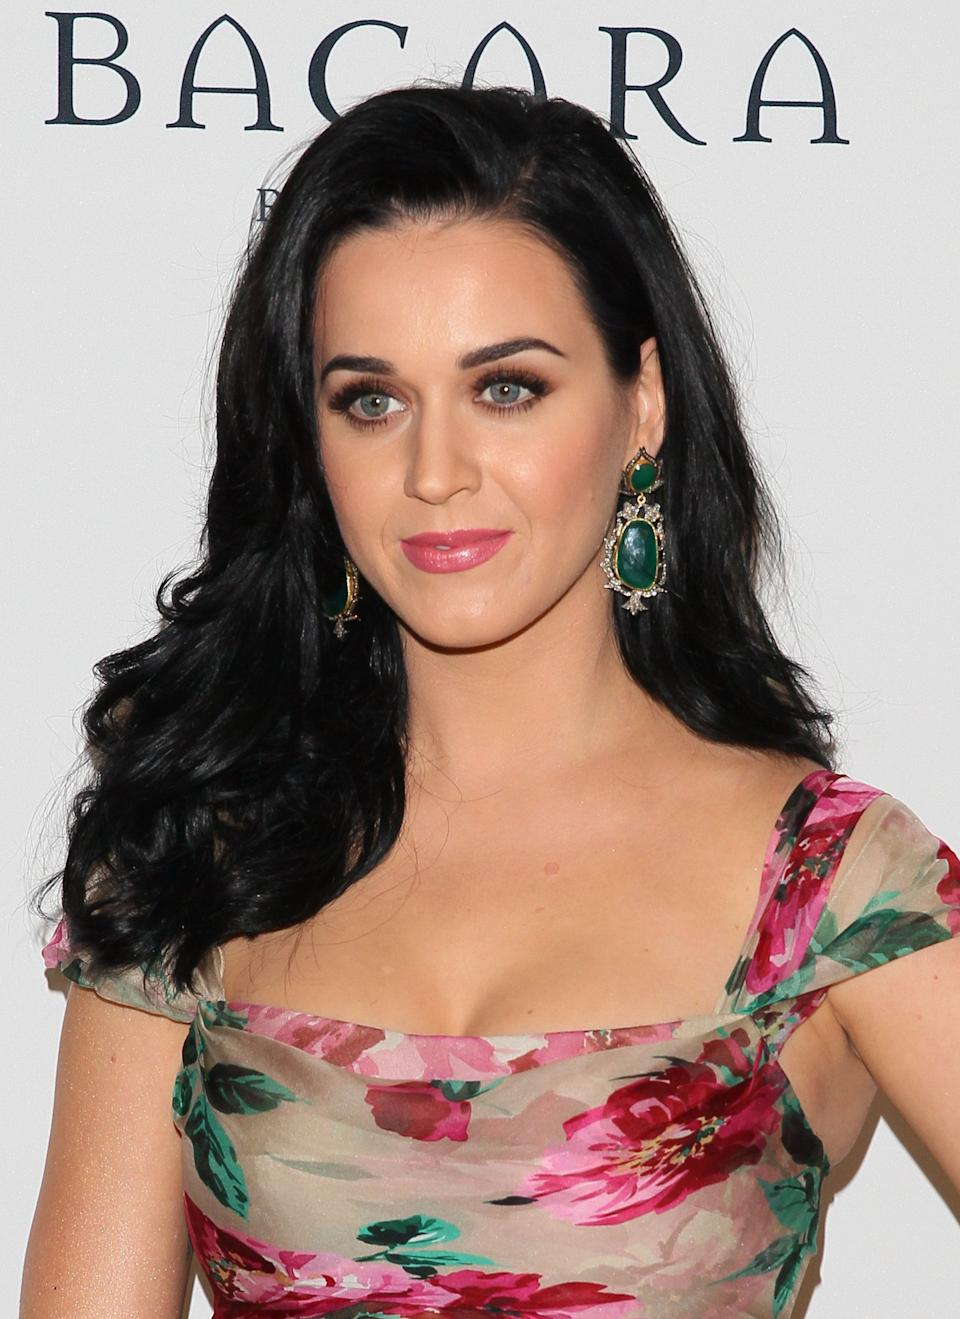 However, sometimes it's difficult to pretend you're anything other than hurt. And do you know what? That's OK too.<br /><br />In showing her vulnerable side in her documentary film, 'Part Of Me', Katy undoubtedly assured a lot of people that it's not about how hard you fall, it's how you get back up again.